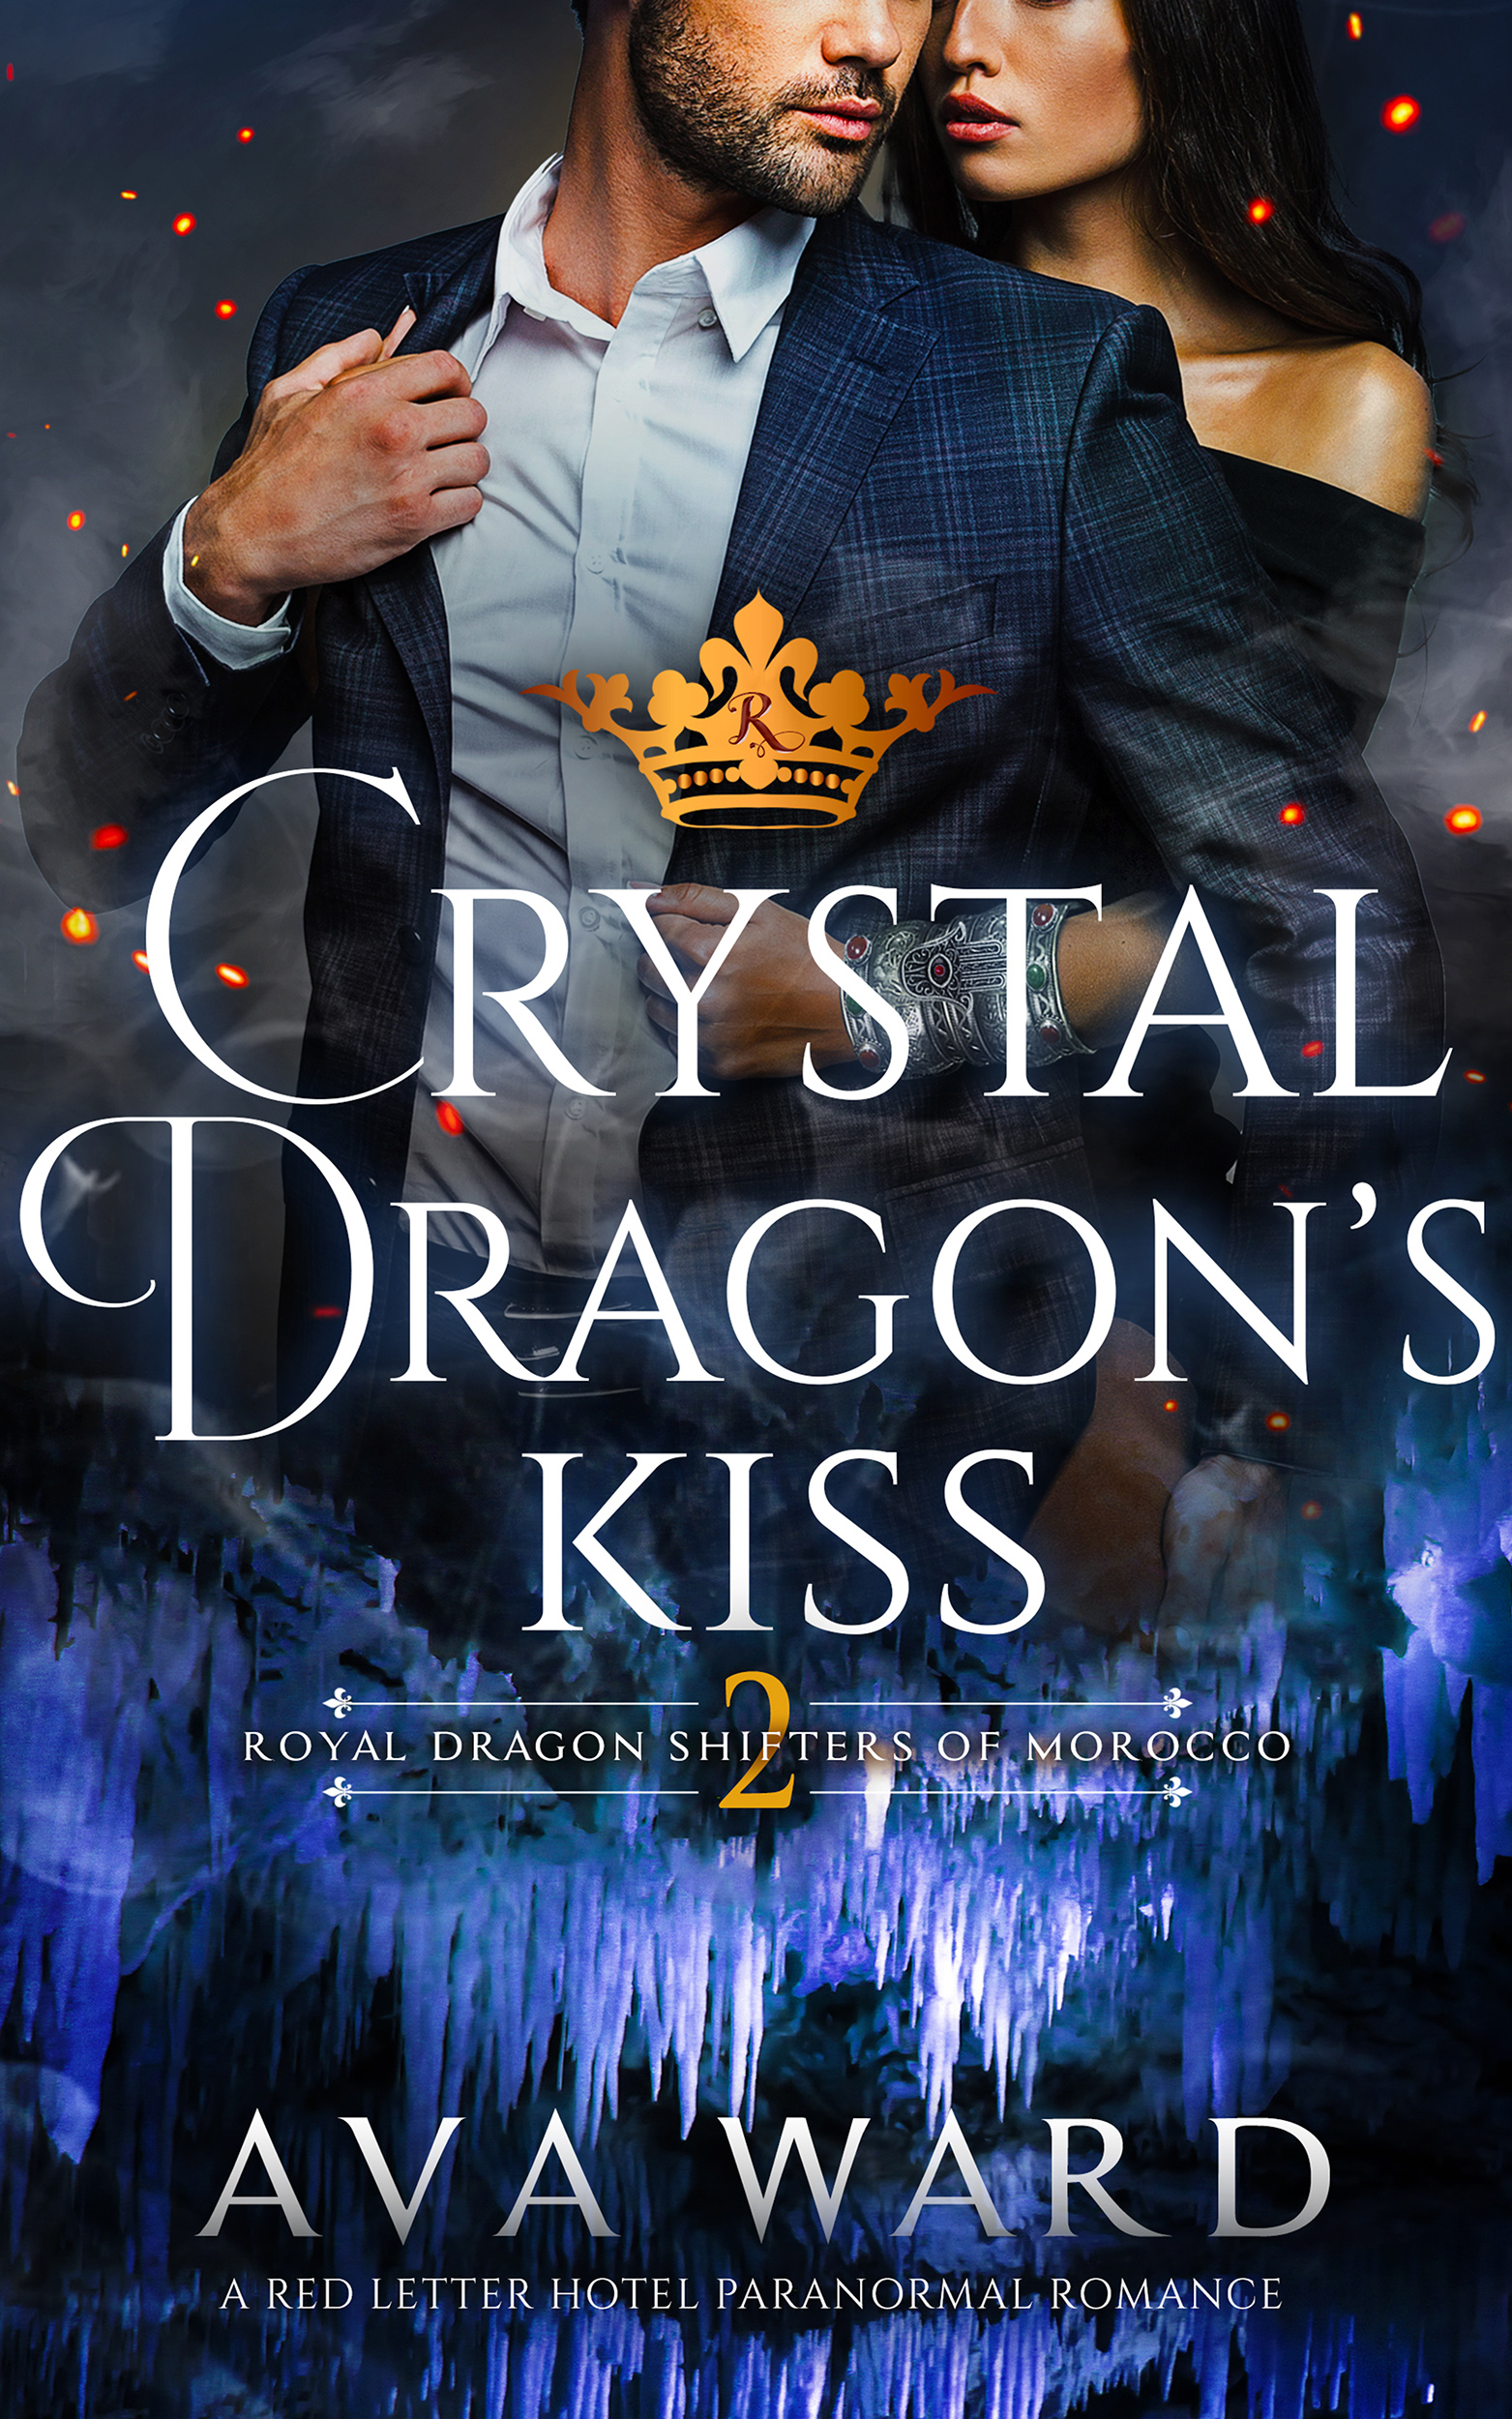 Crystal Dragon's Kiss - eBook small.jpg